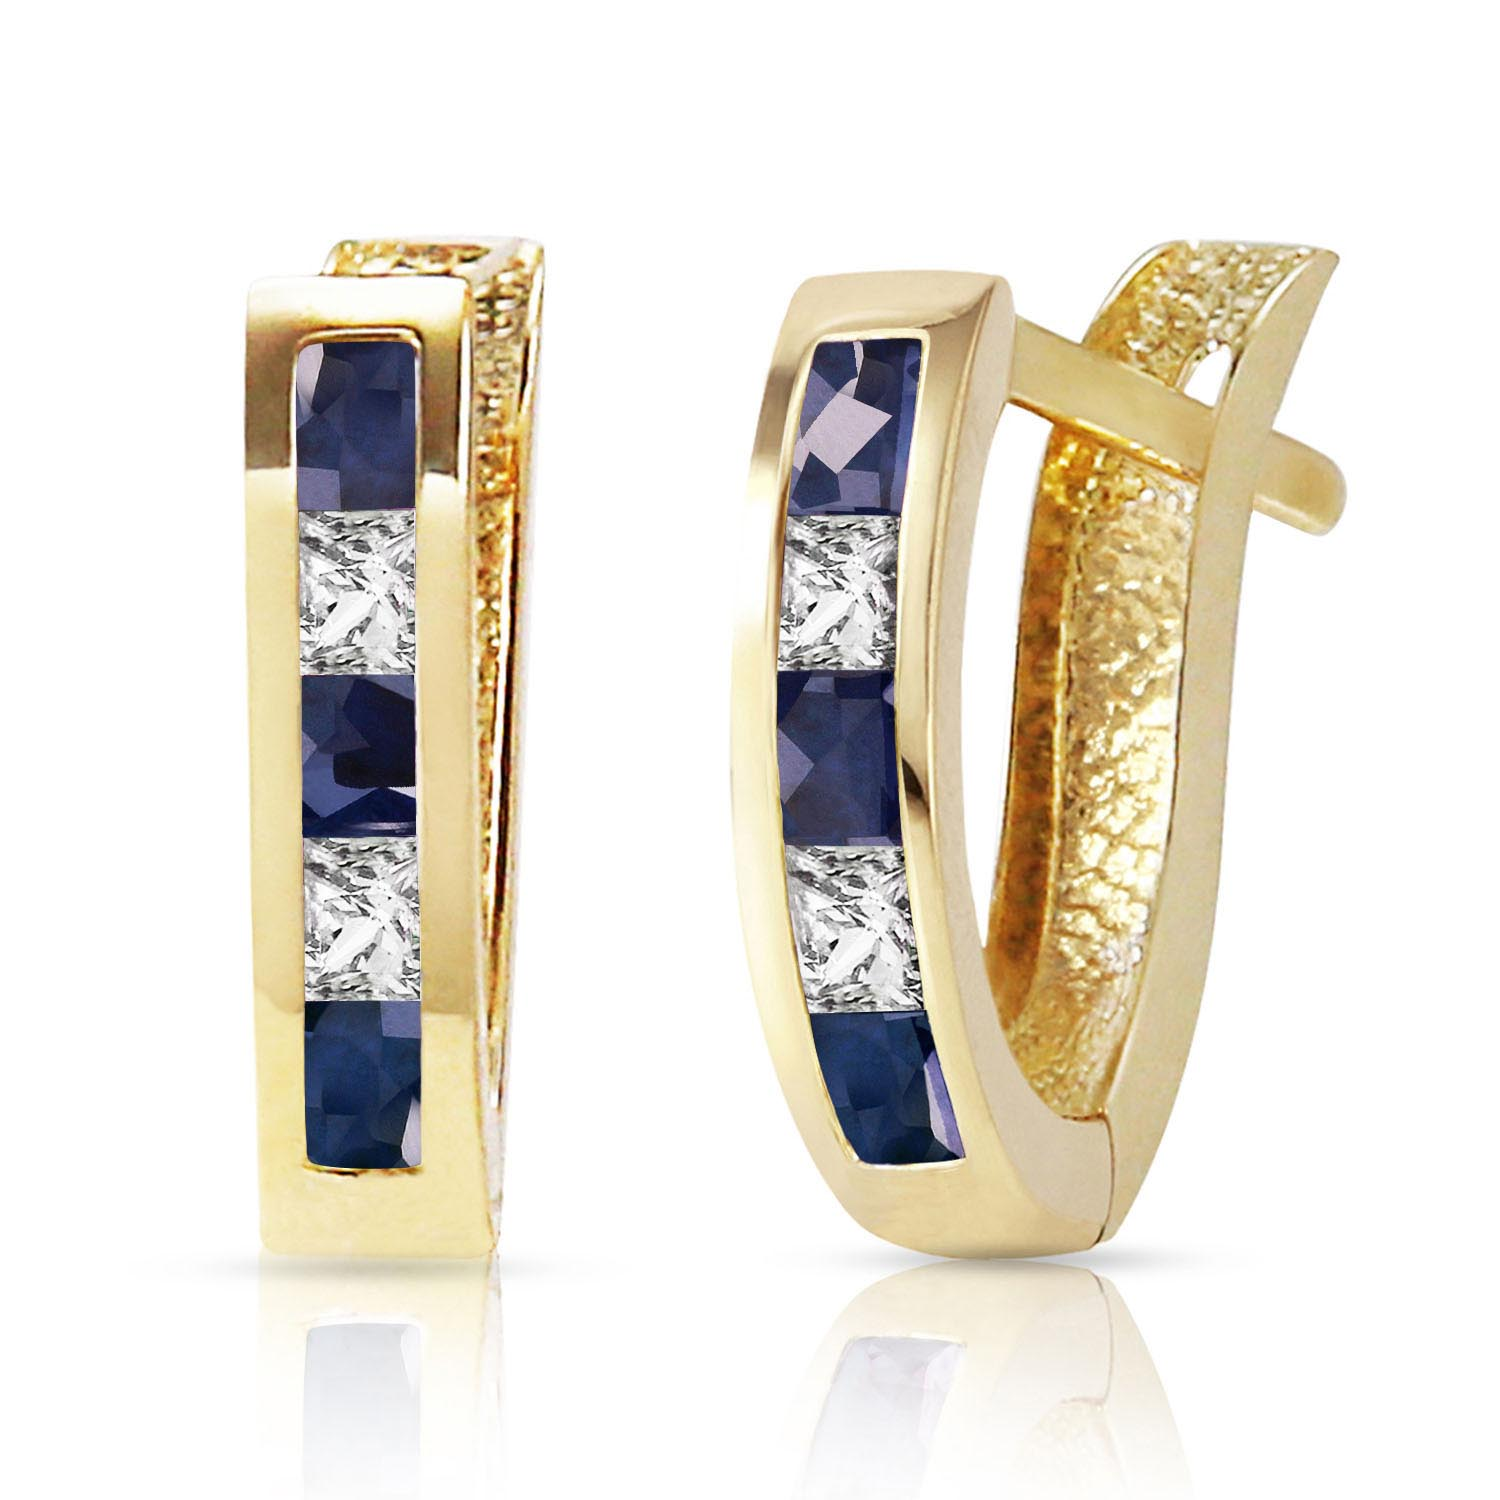 Sapphire & White Topaz Acute Huggie Earrings in 9ct Gold